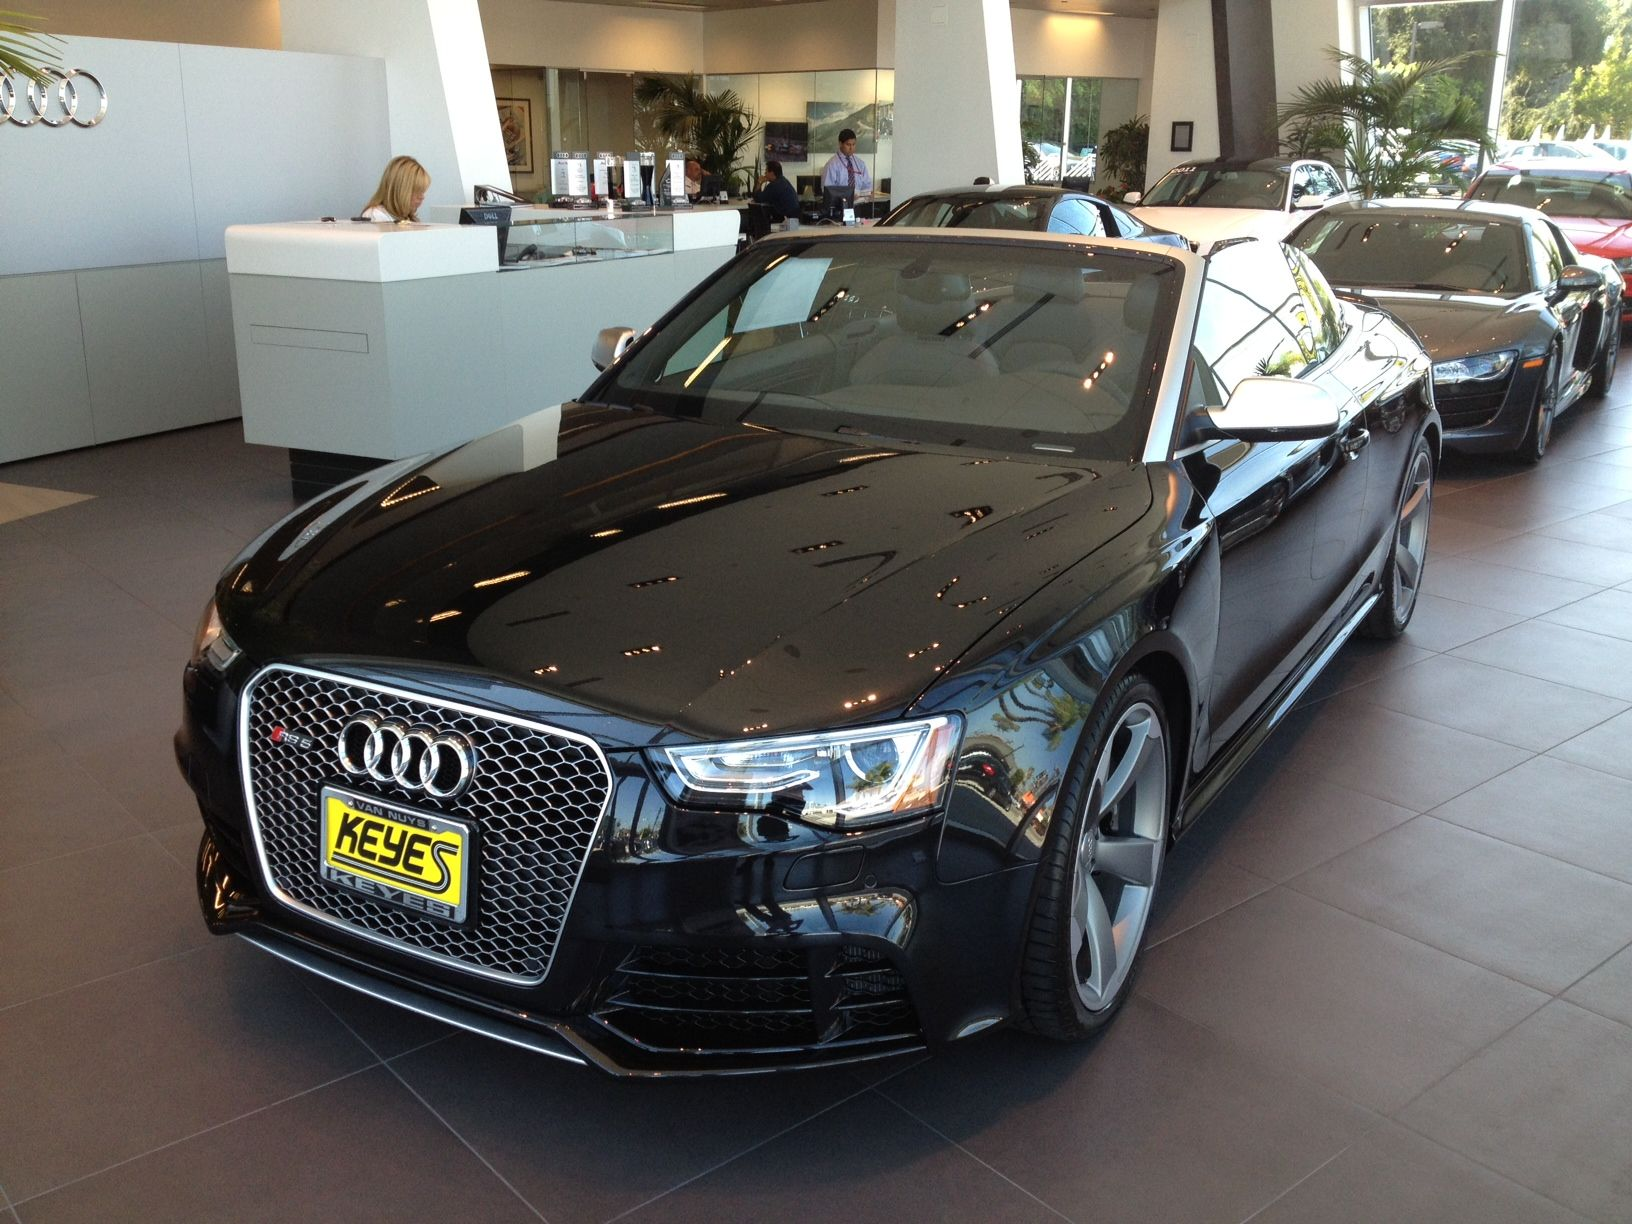 Charmant 2014 Audi RS5 Cabriolet Has Arrived At Keyes Audi. This Very Rare Audi Is  Panther